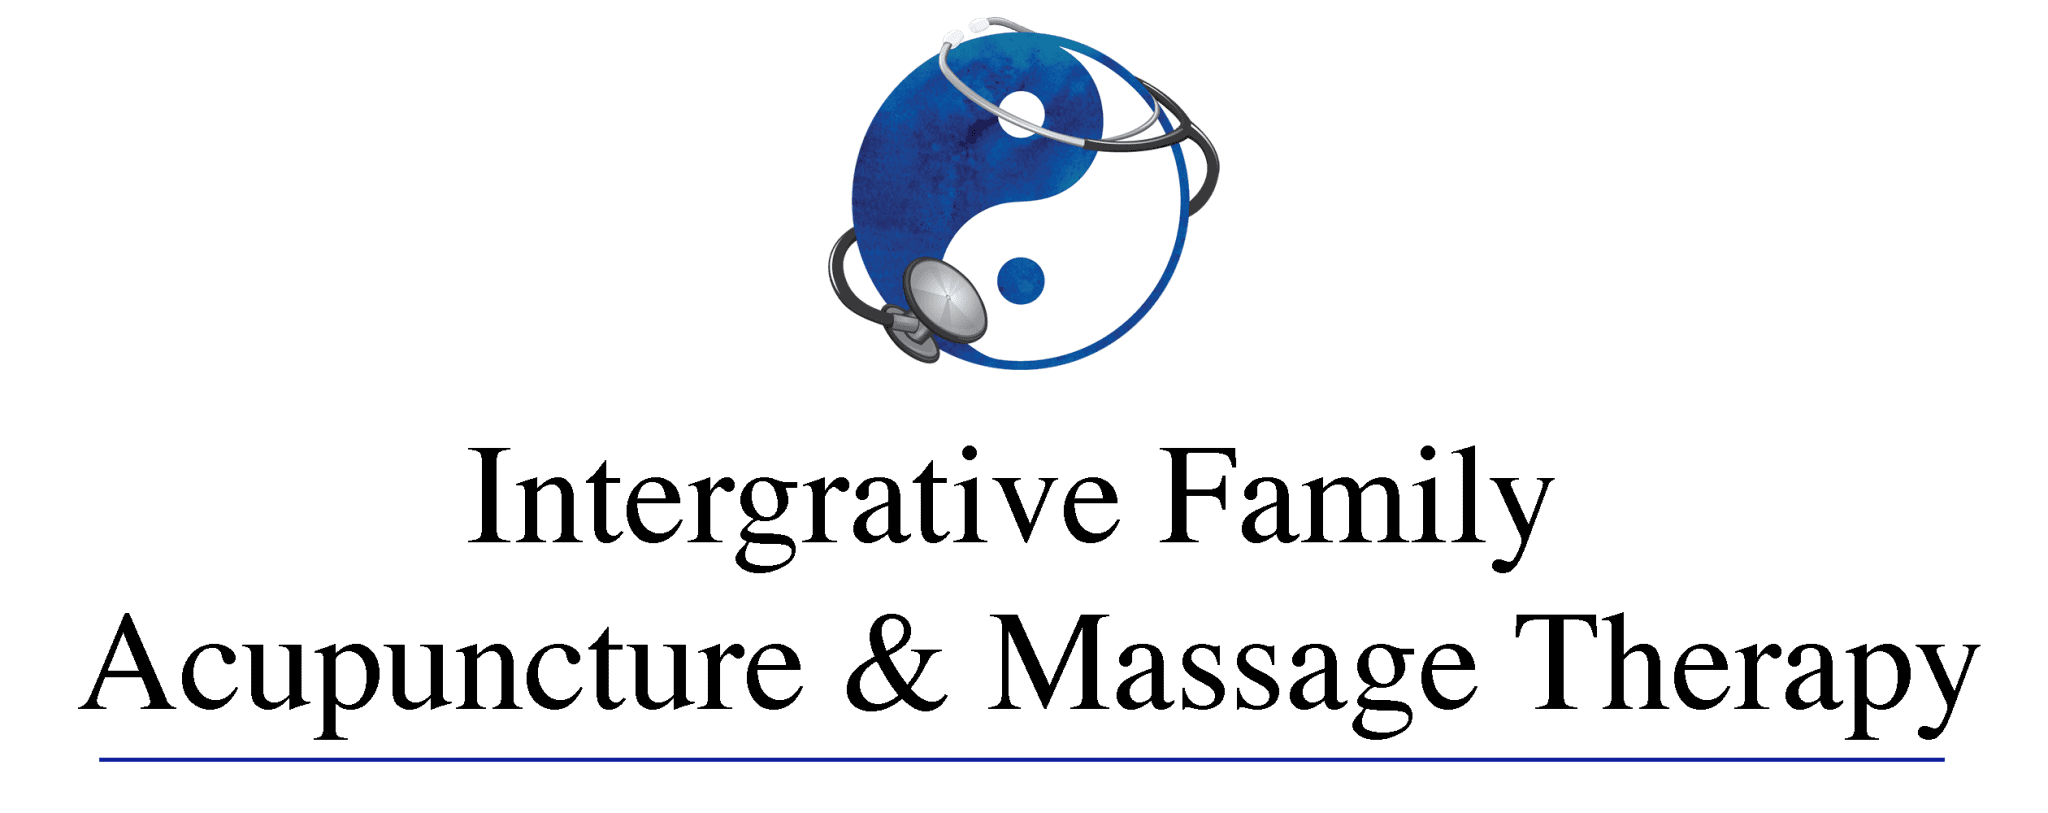 IFamilywellness Acupuncture and Massage smithtown acupuncture logo